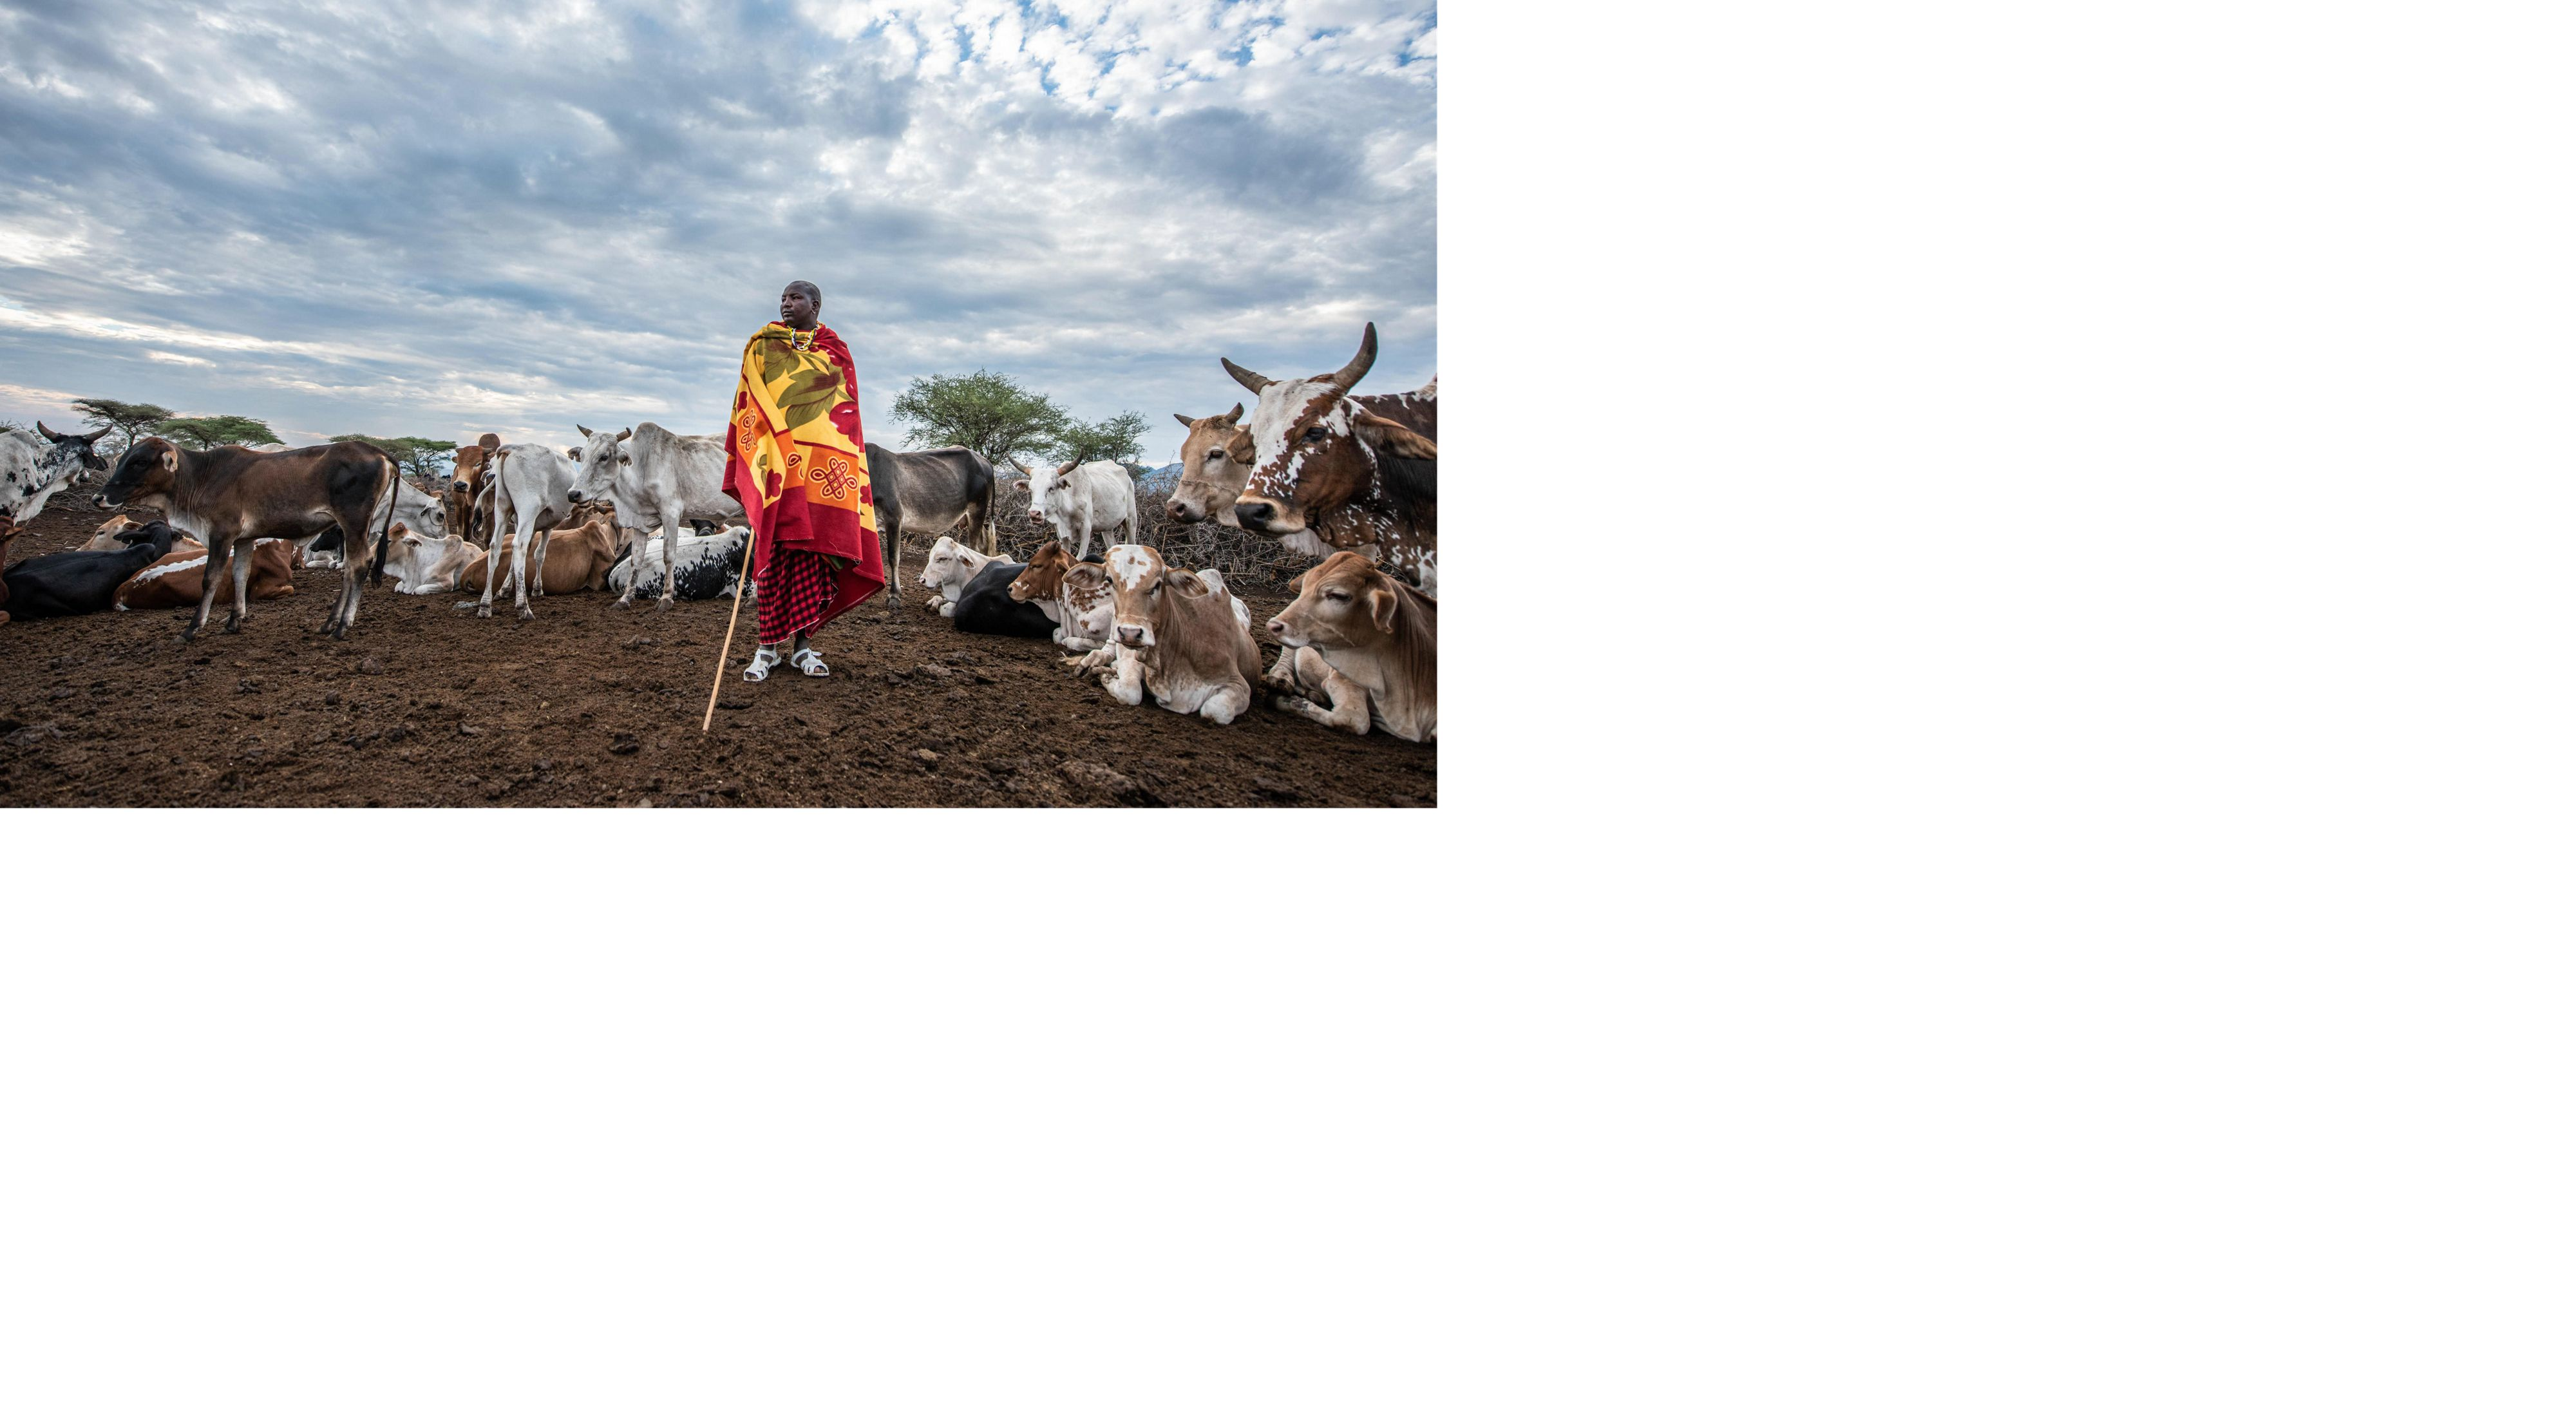 Herder in front of his cattle